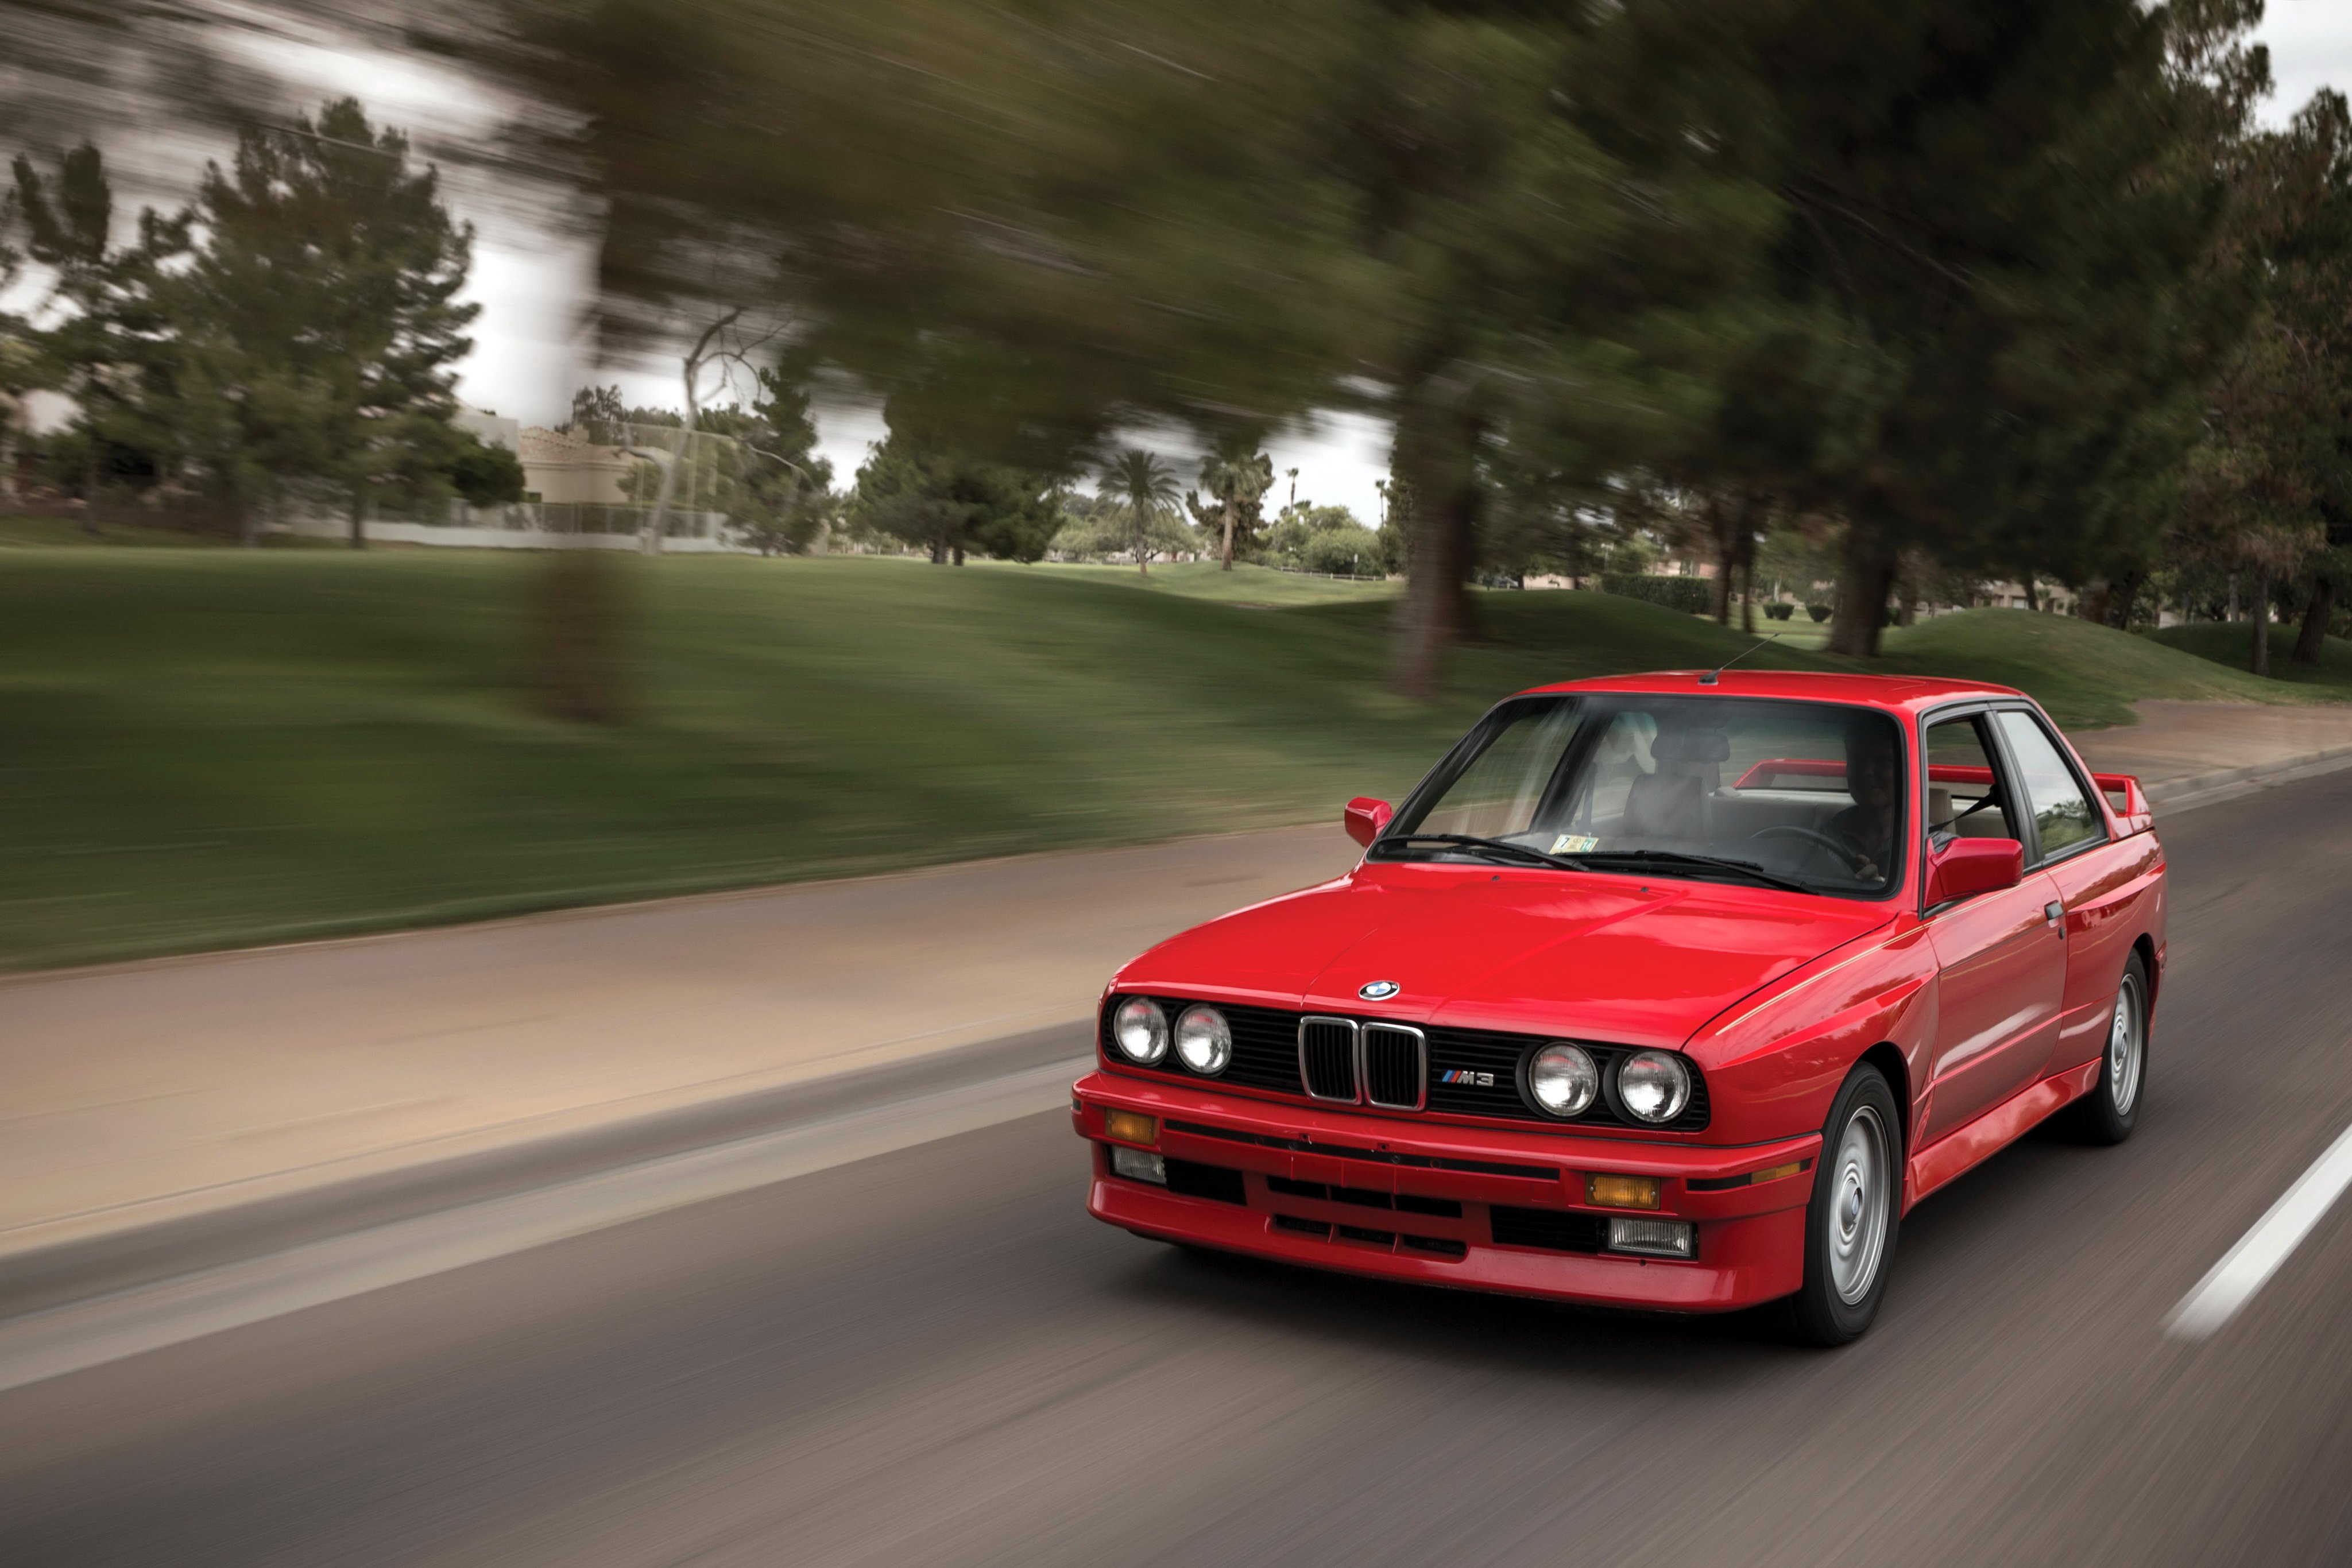 E30 Wallpapers 331748 Hd Wallpaper Backgrounds Download